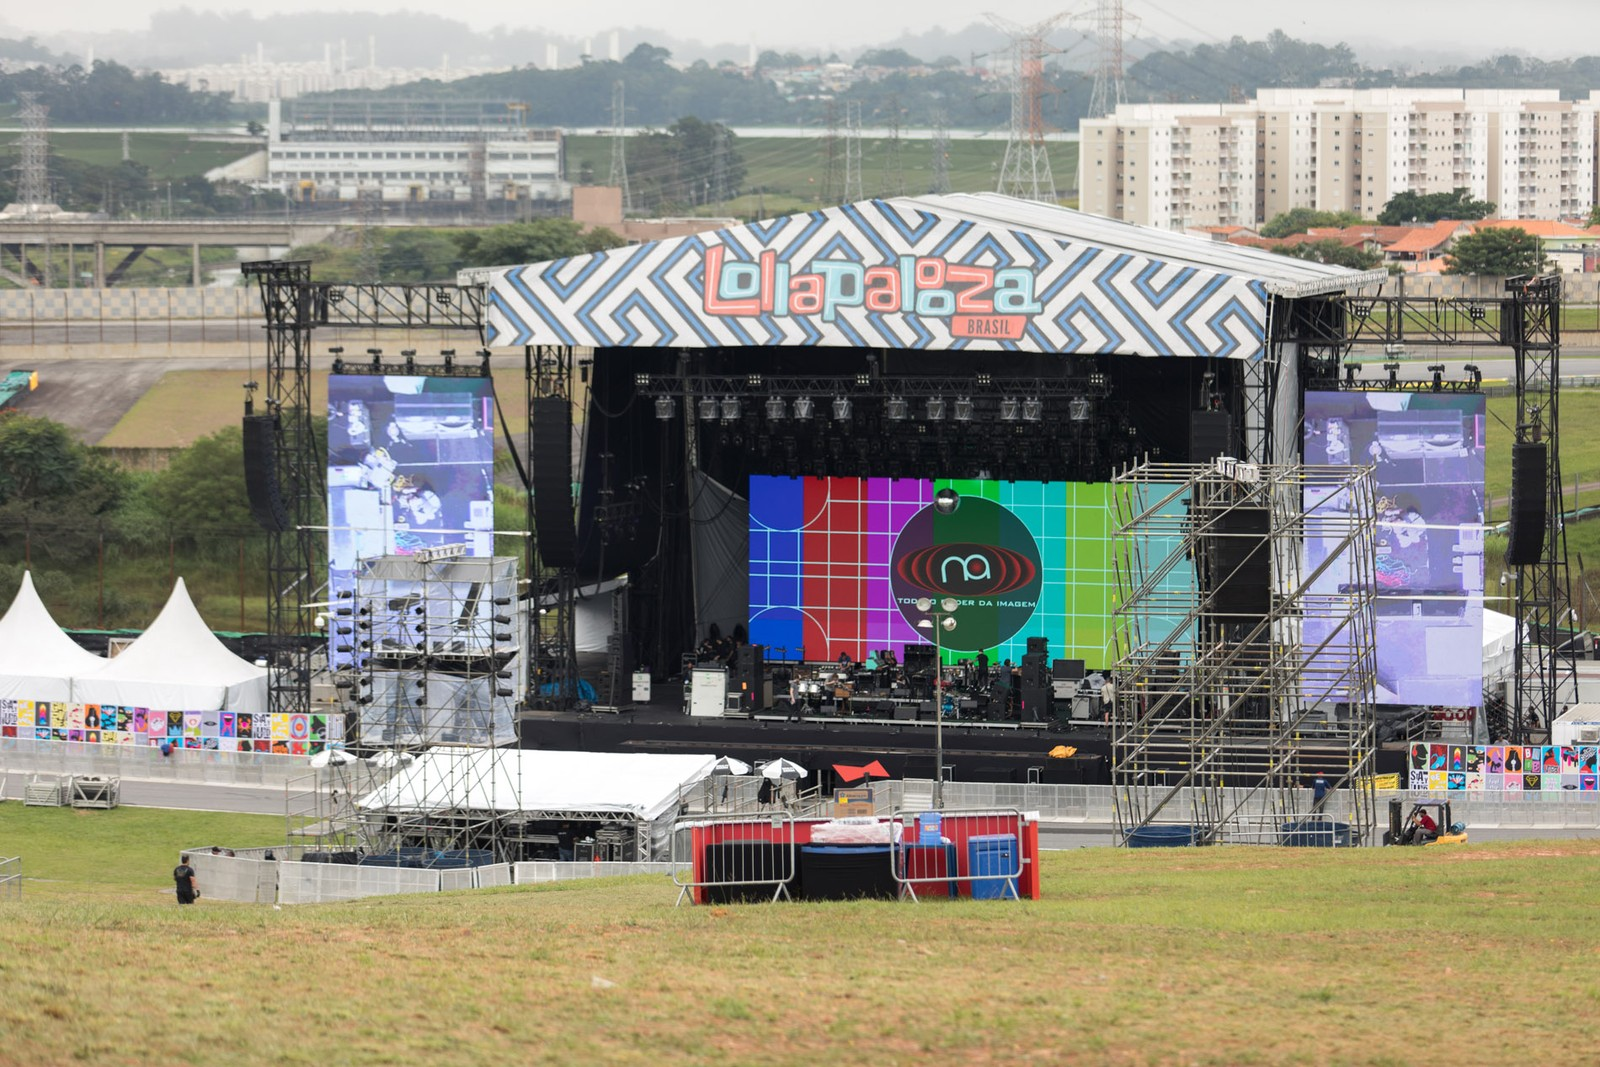 Lollapalooza 2018: Preparativos finais do festival no Autódromo de Interlagos